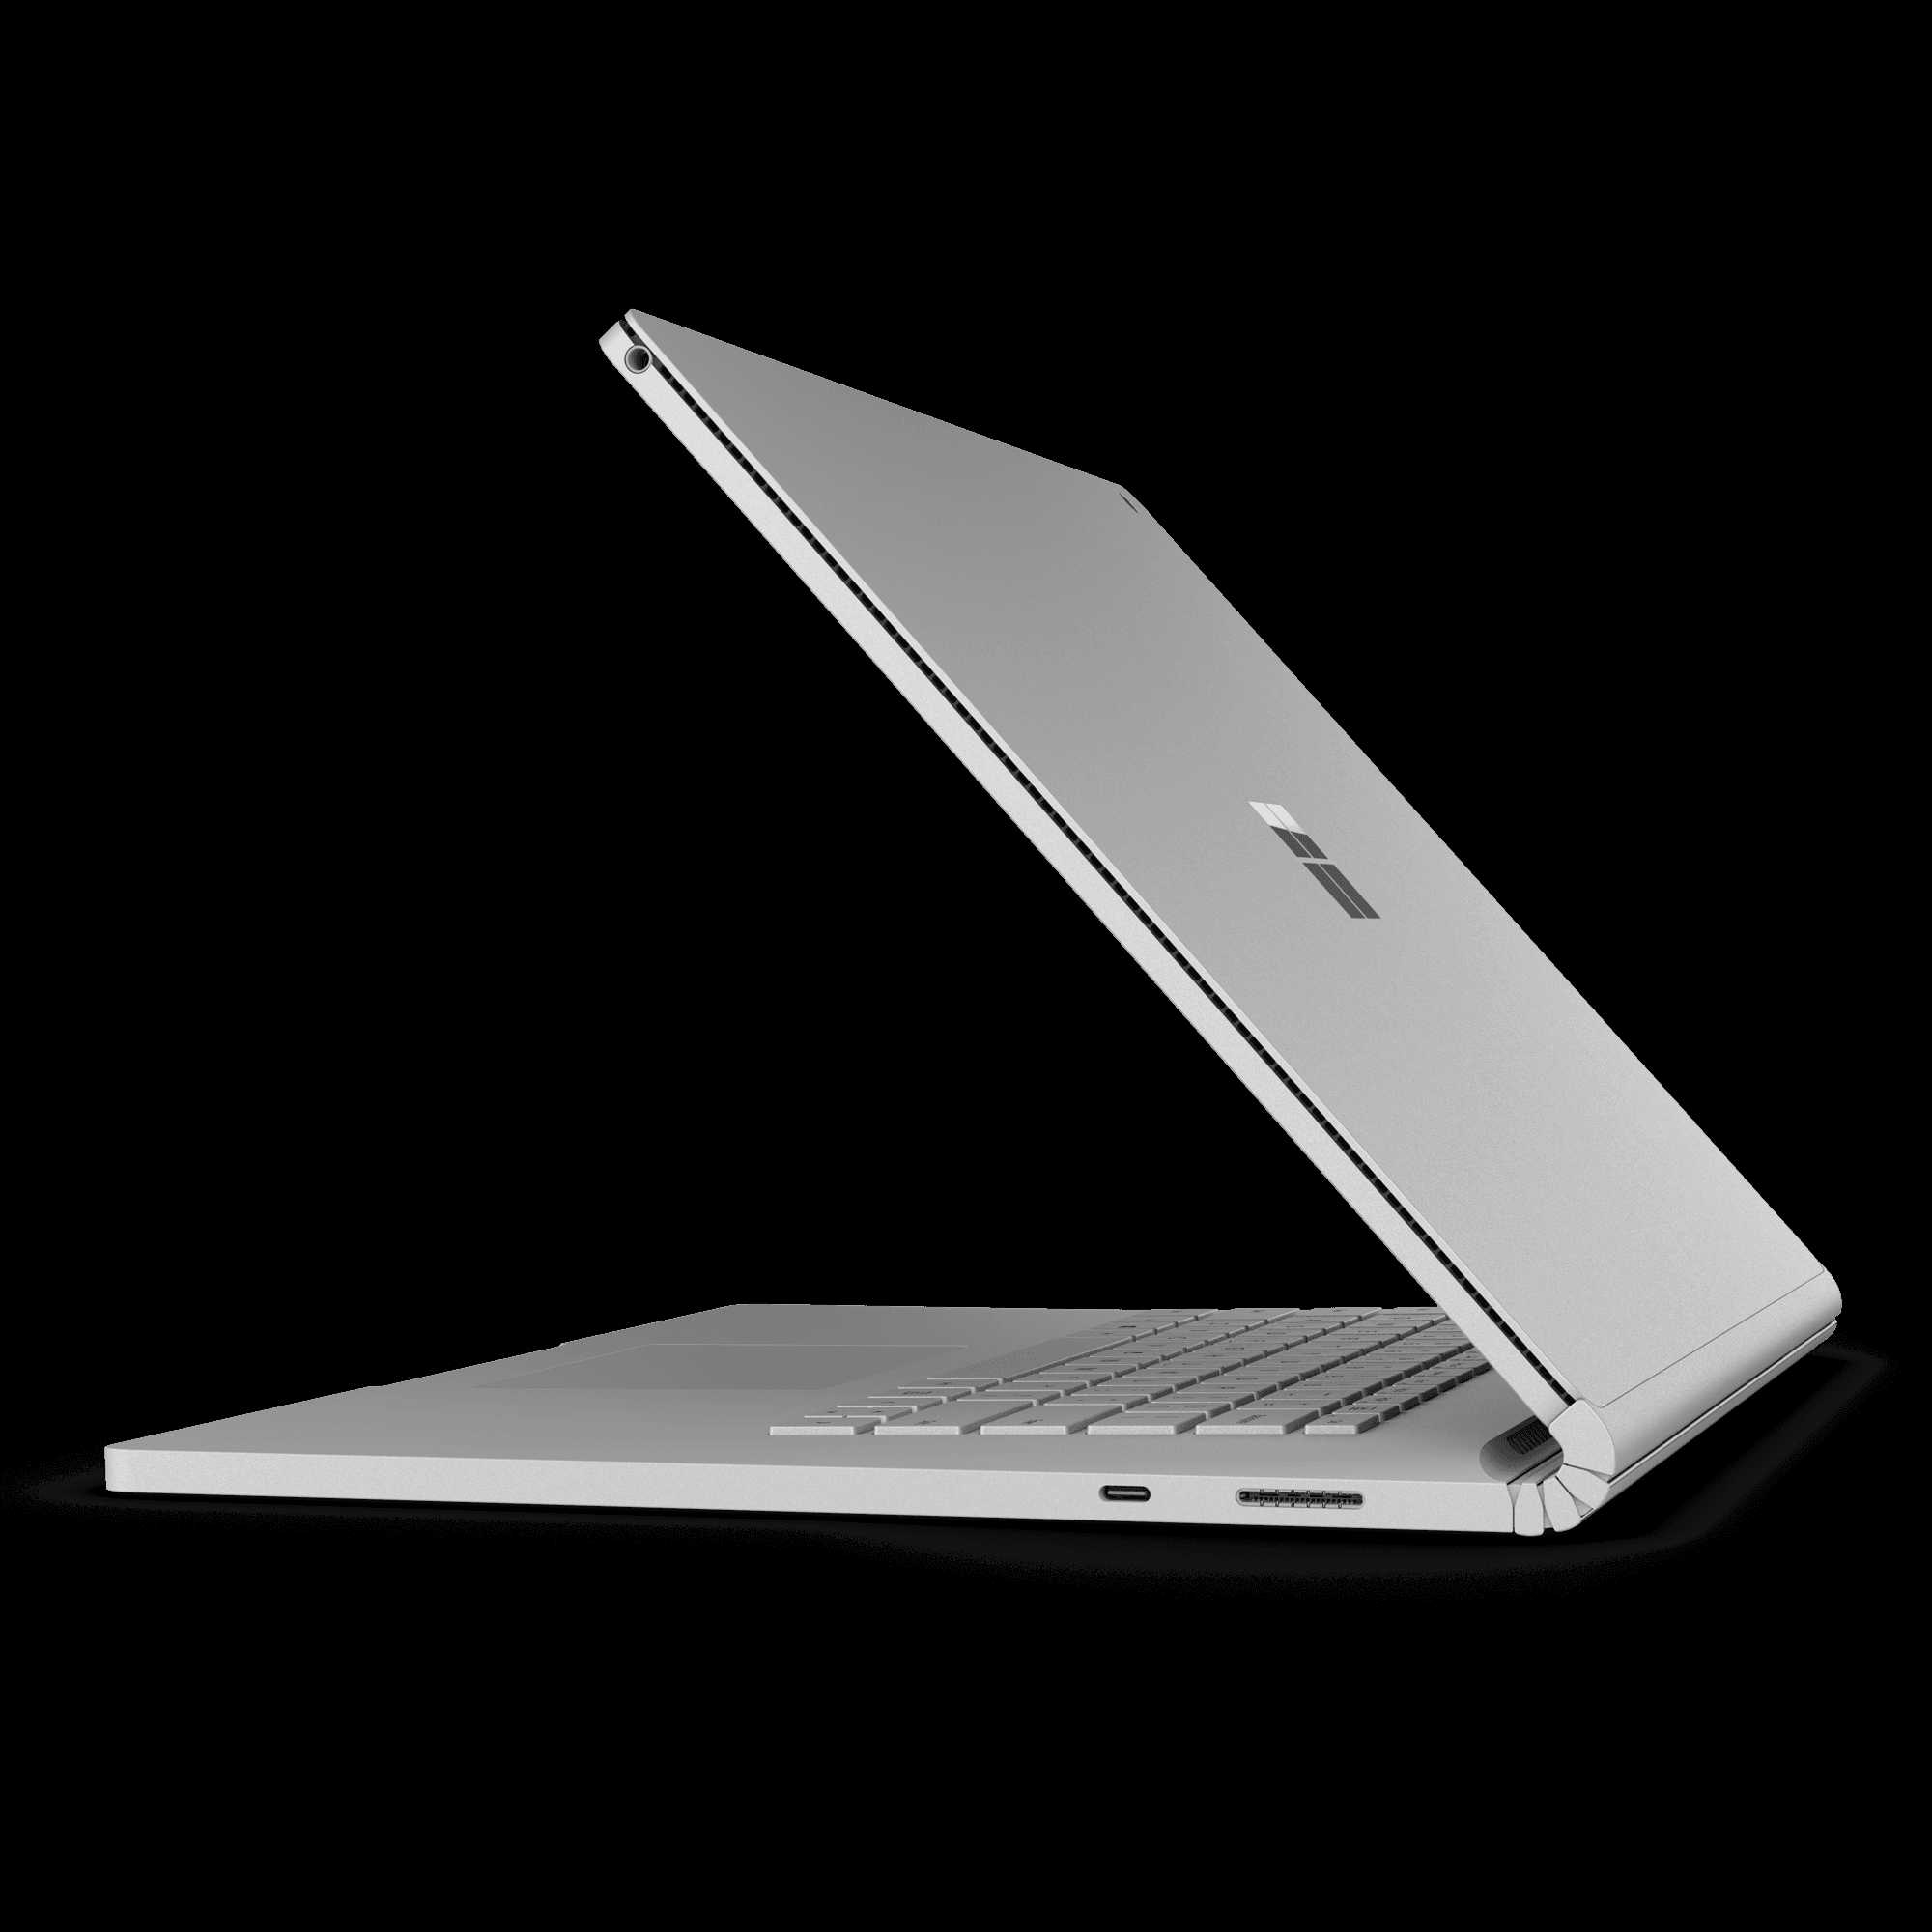 Best Laptop For Excel Spreadsheets With Regard To Best Laptop For Large Excel Spreadsheets As Well As Microsoft